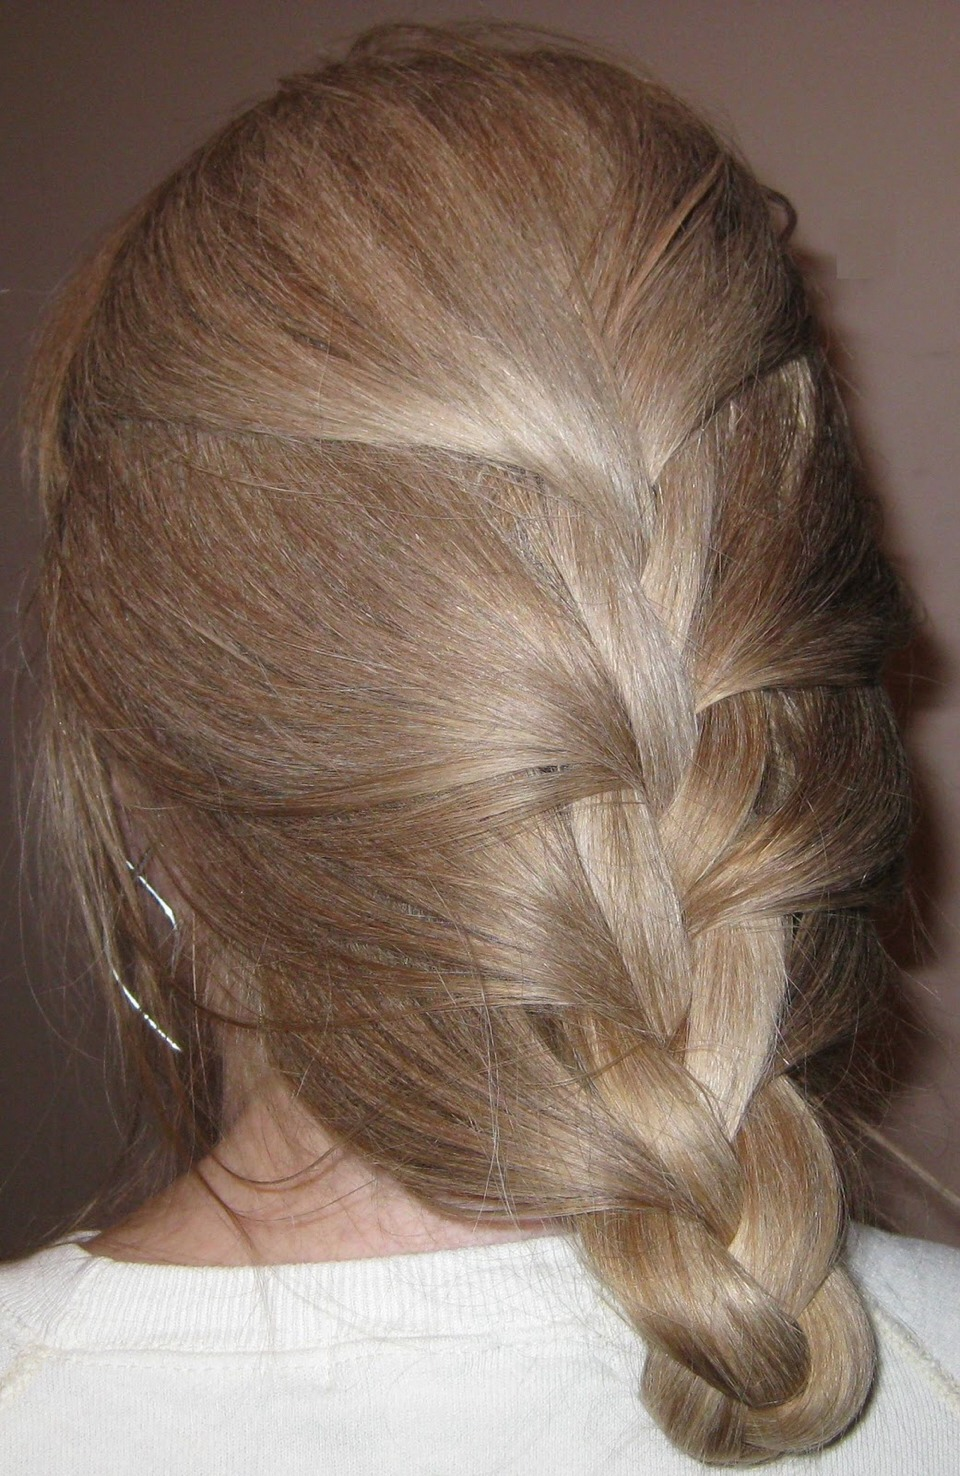 My sister just puts it in a simple braid when it's damp usually a braid like this but u could do a few, like 3-4 French braids for like 20-30 mins and when you take it out it won't be frizzy and have a nice wave to it.